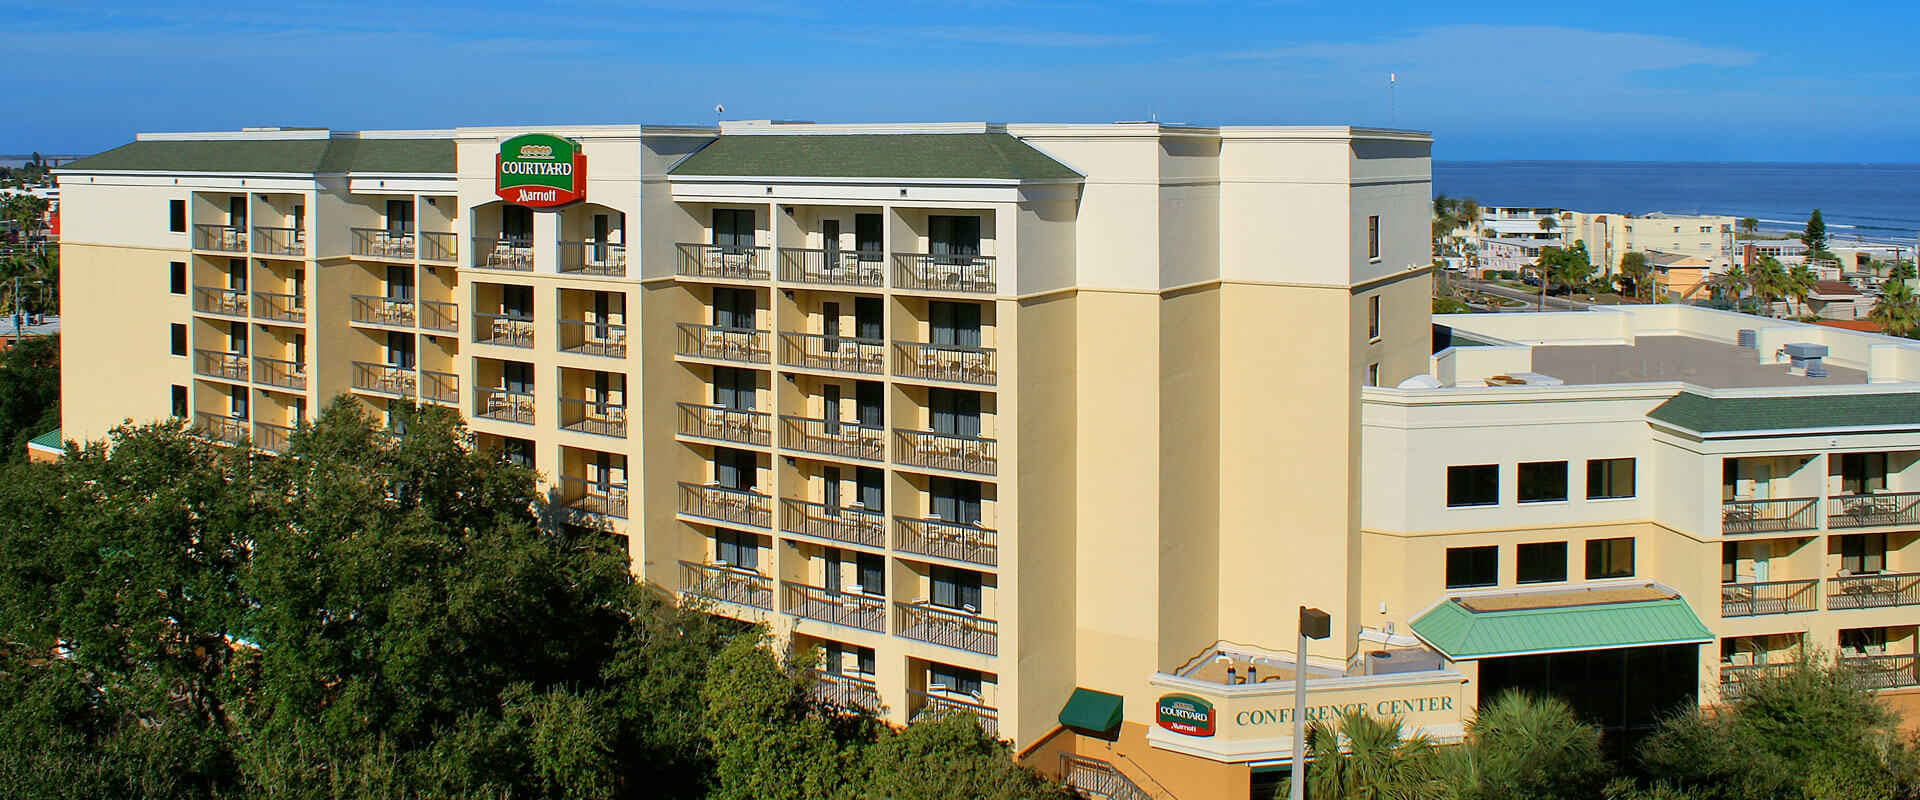 Courtyard Marriott Cocoa Beach